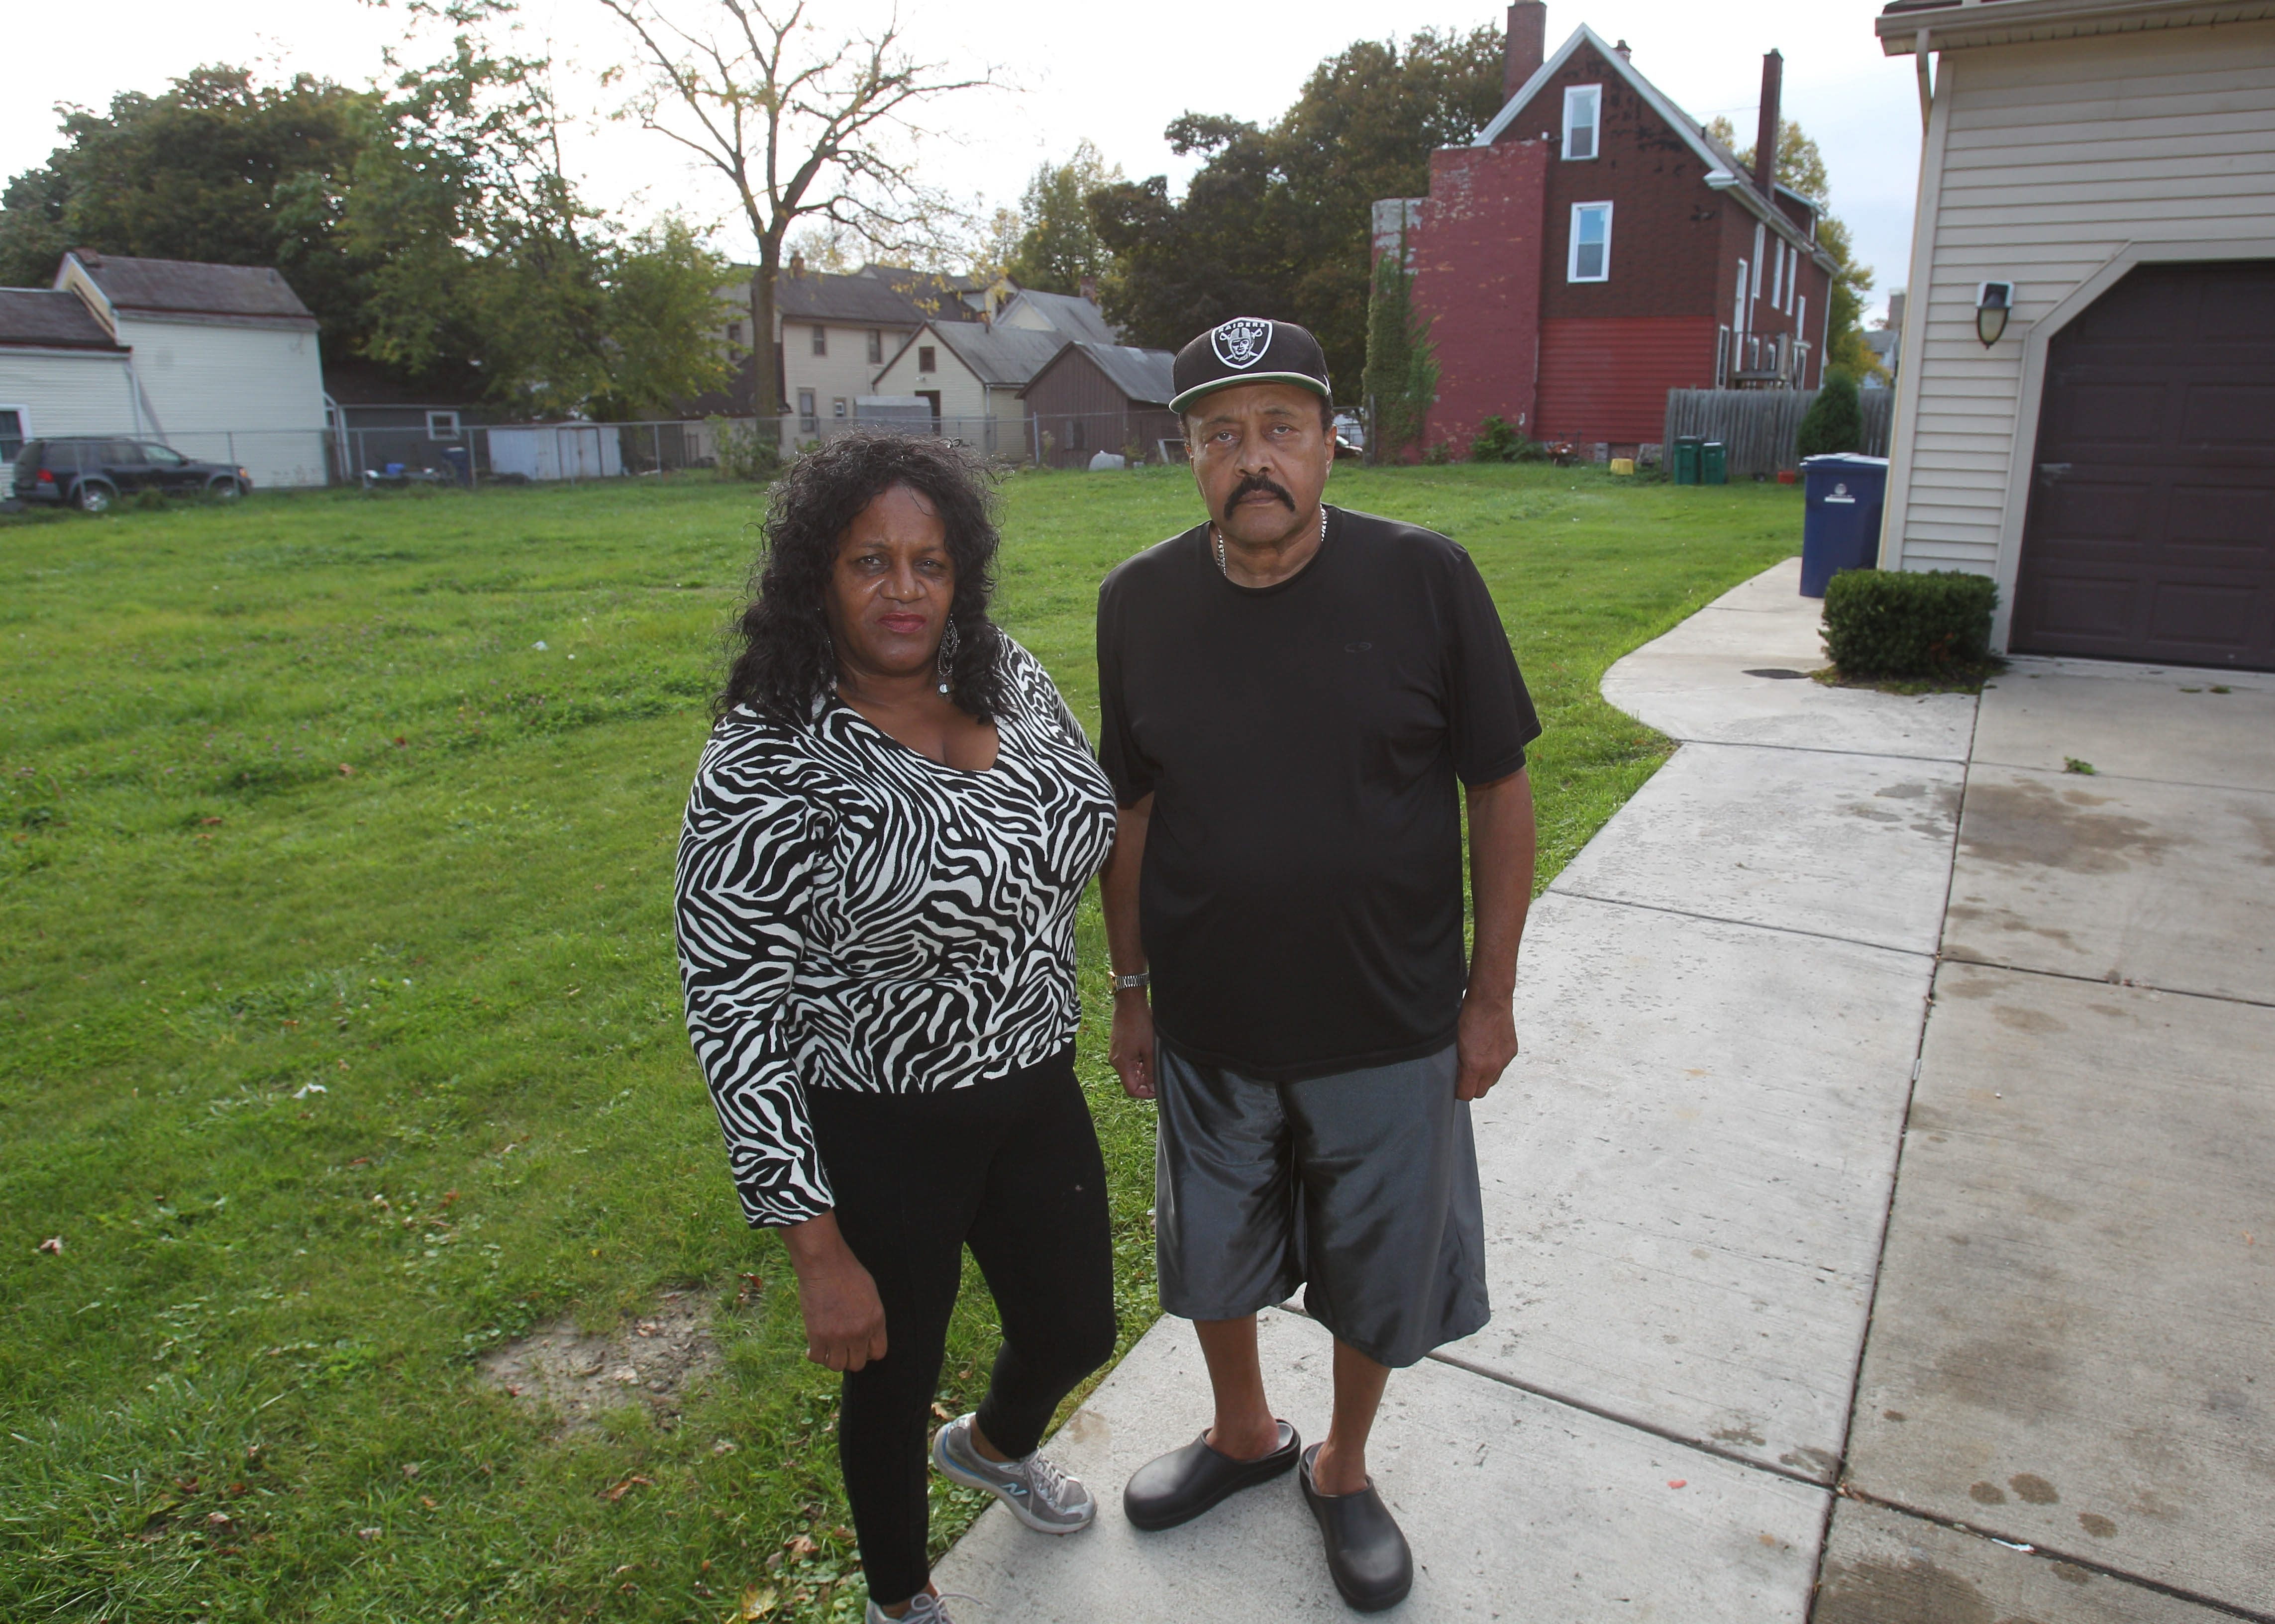 Mattie and Larry Goins were given approval to buy the lot next to their home on Lemon Street in Buffalo only after they were told that the Rev. Michael Chapman wasn't interested in the property.